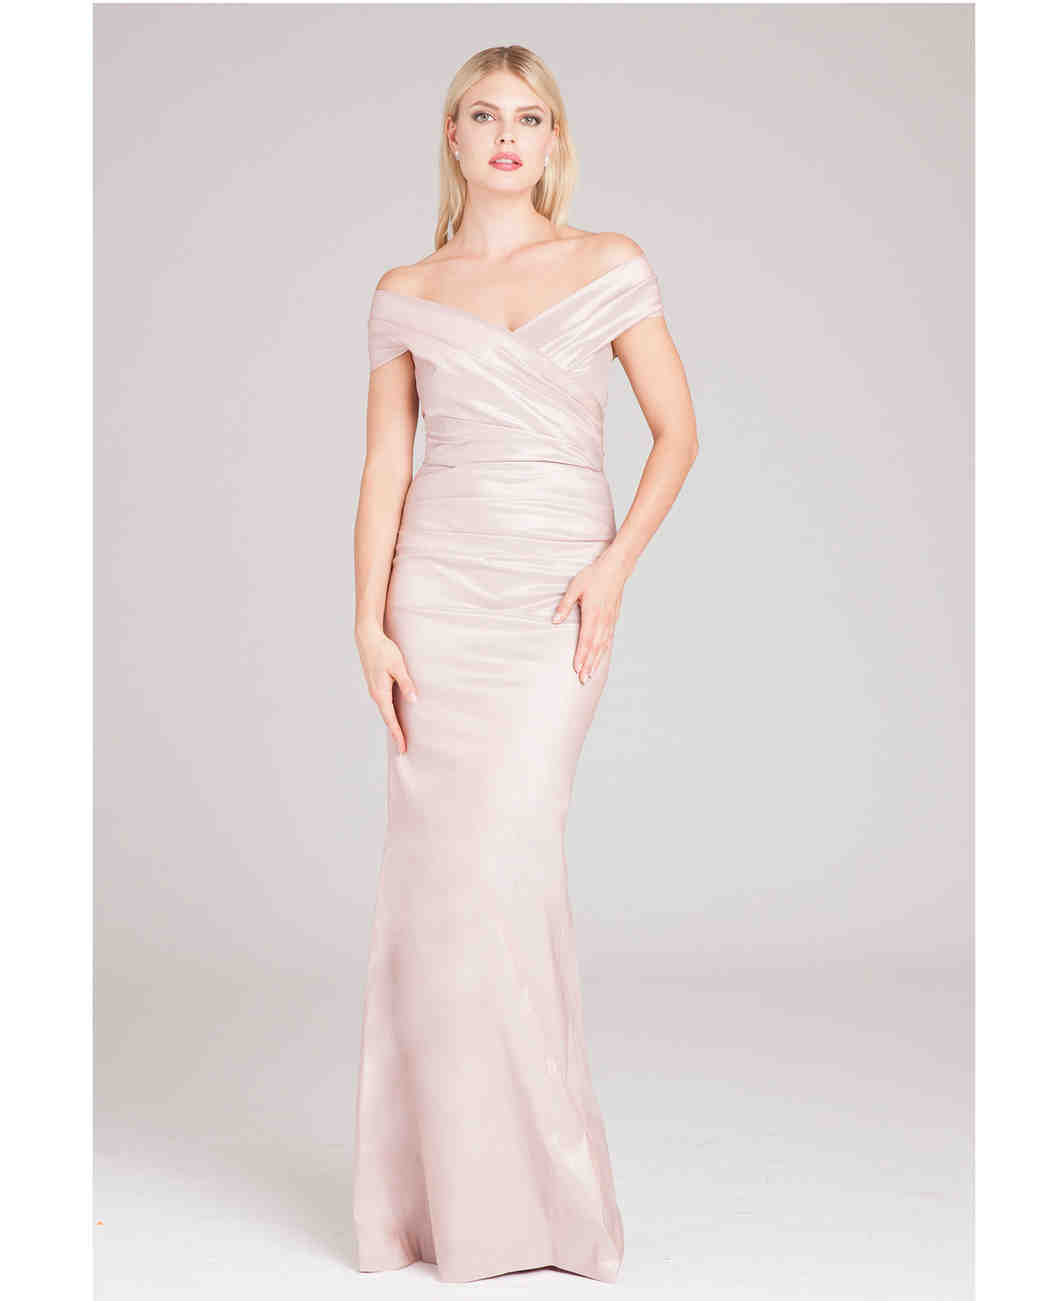 c1652749134 The Prettiest Pink Mother-of-the-Bride and-Groom Dresses